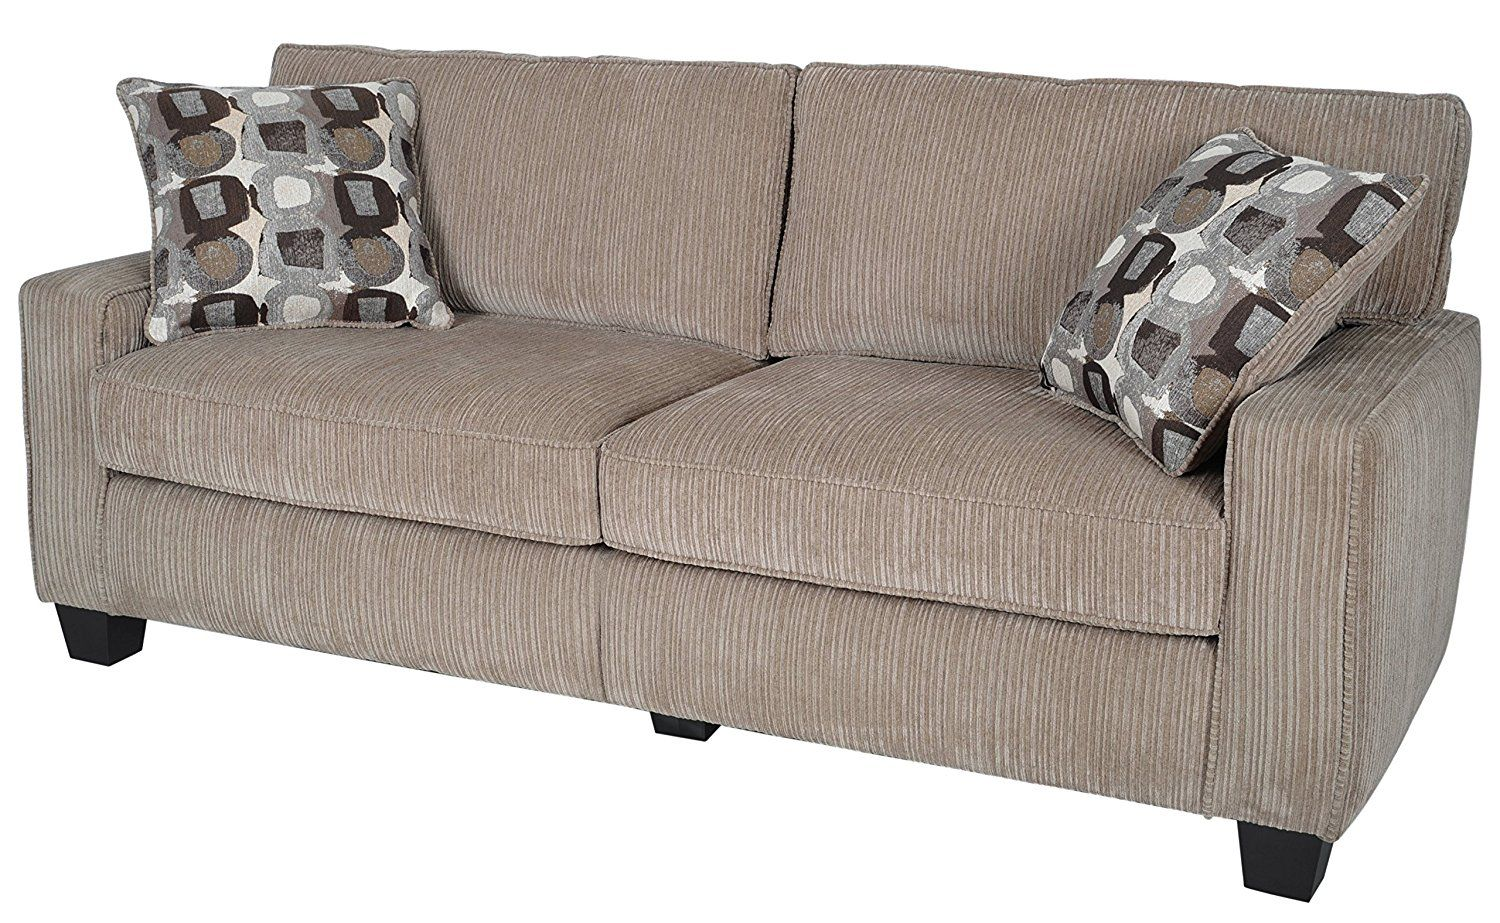 Most Comfortable Futon Sofa Beds Sofas Value City Sleeper Bed Uk